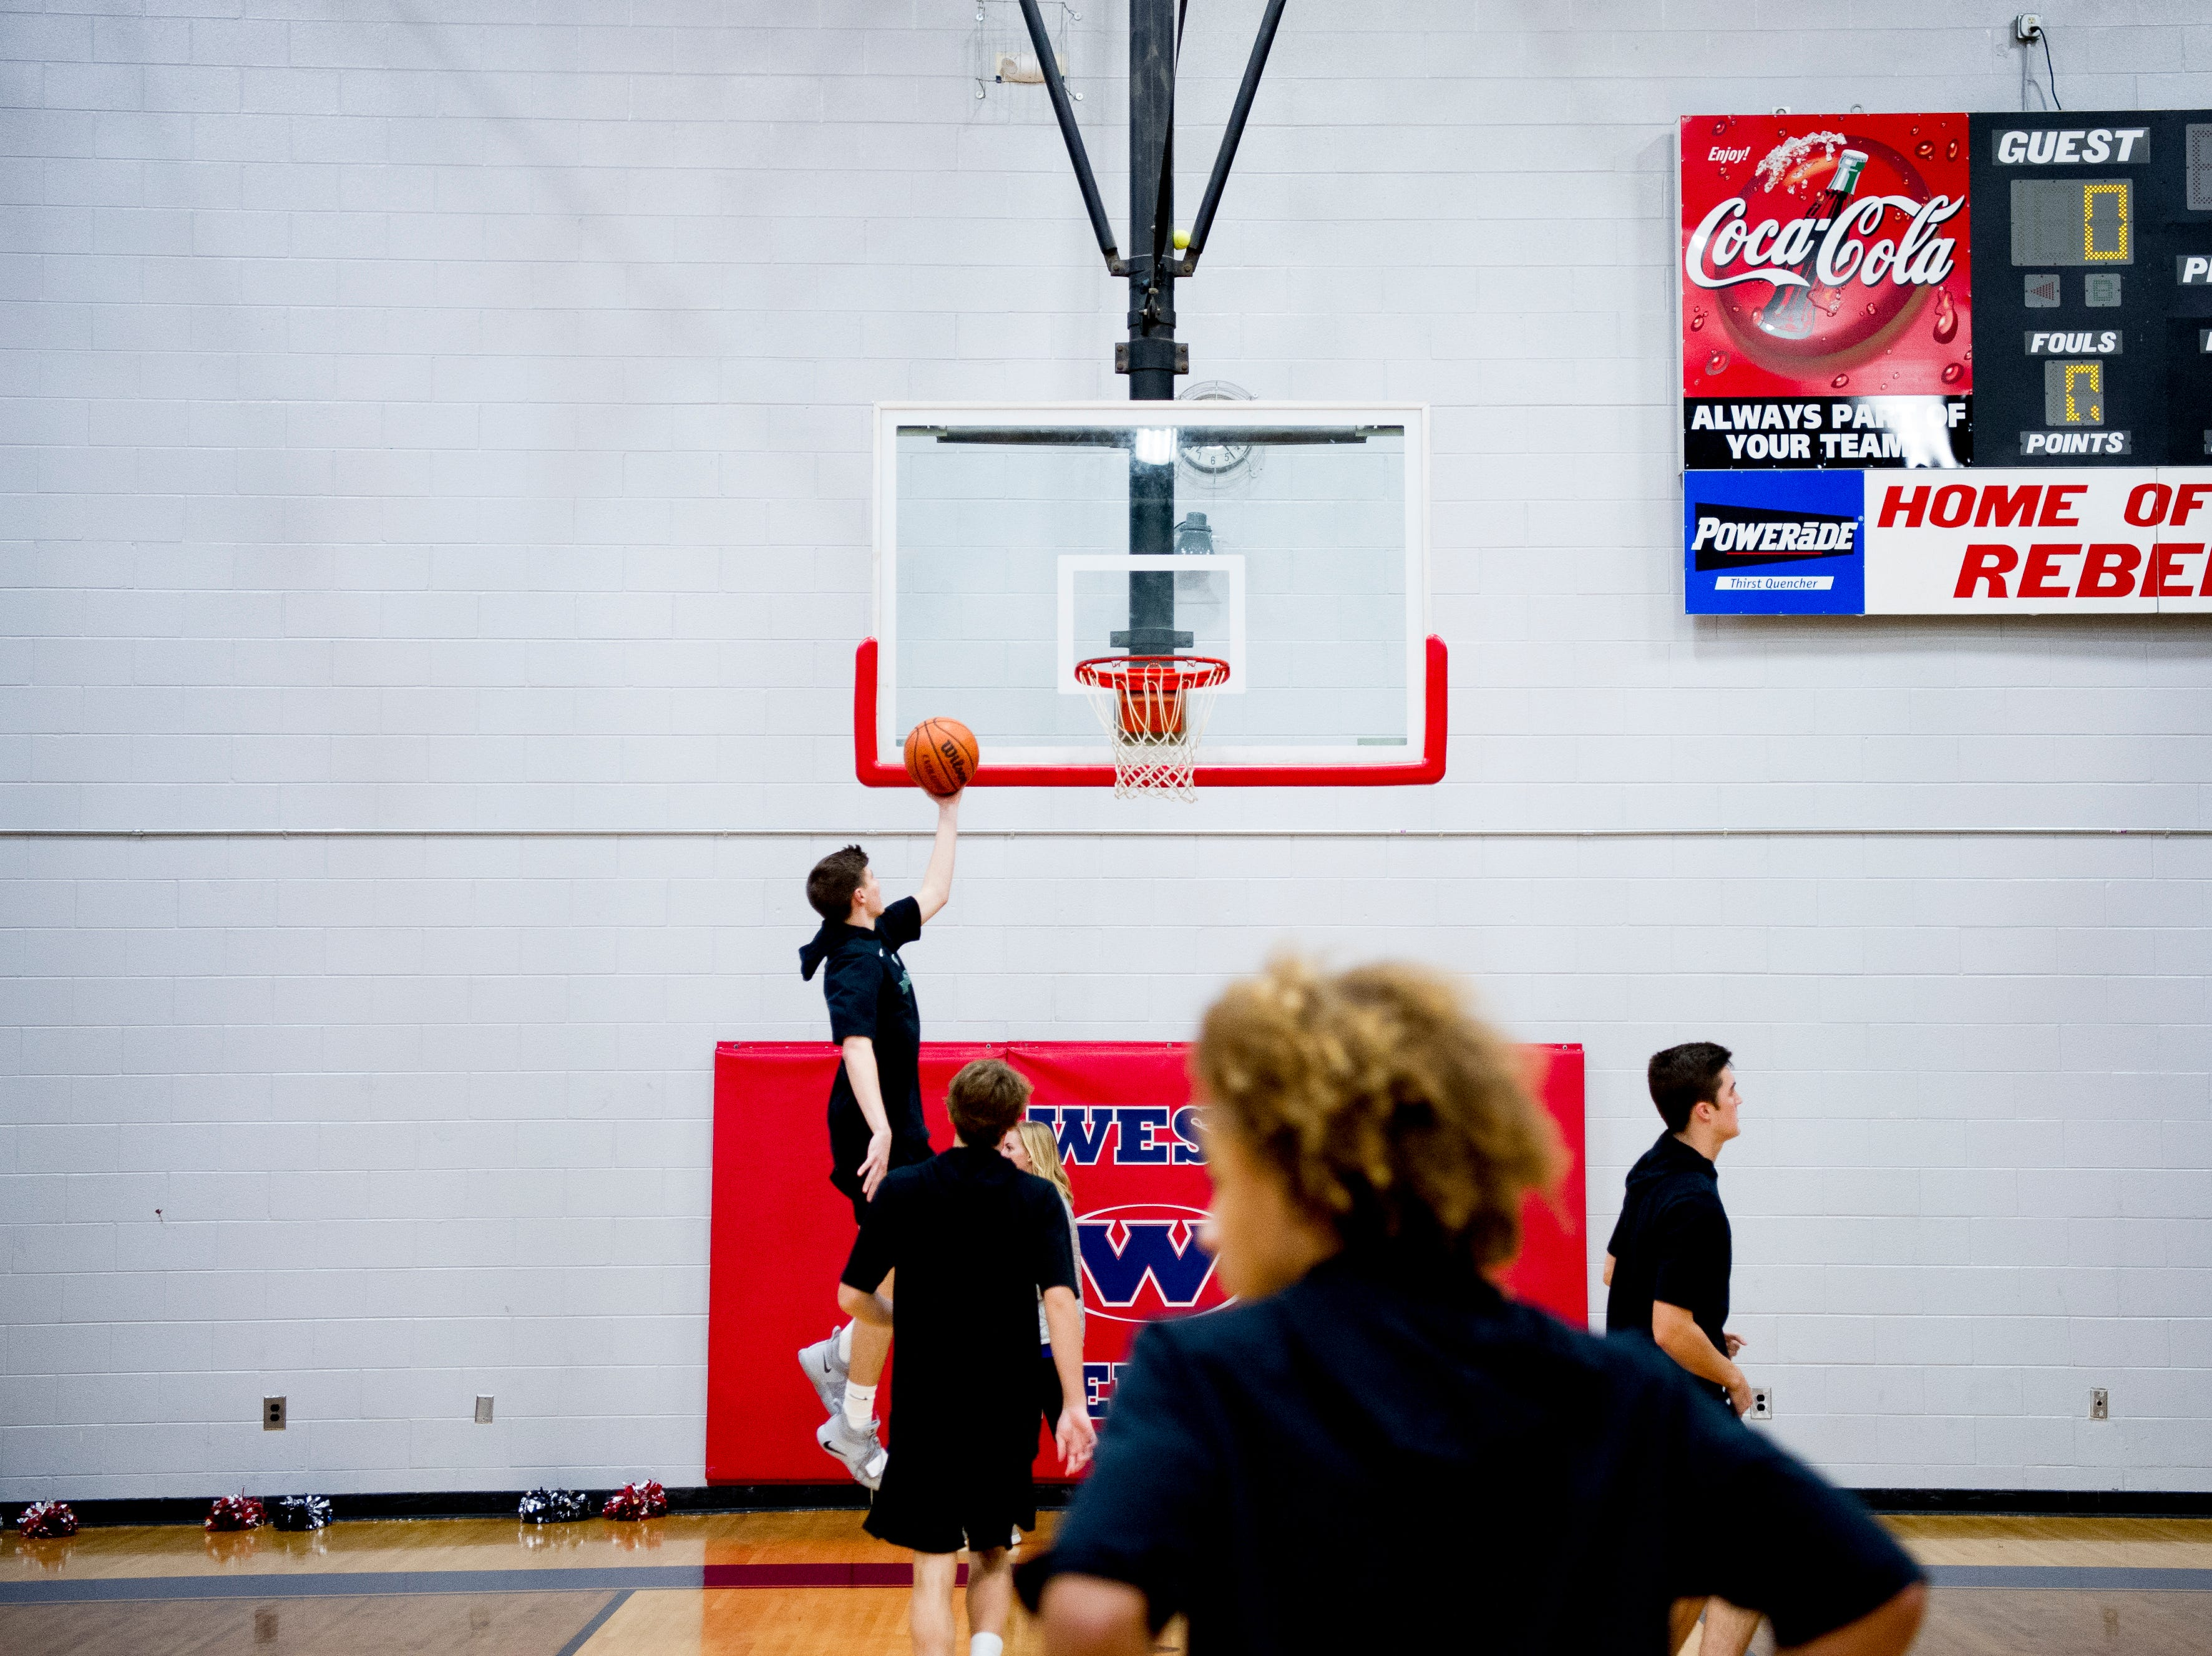 West players warm up on the court during a game between West and Webb at West High School in Knoxville, Tennessee on Friday, January 4, 2019.